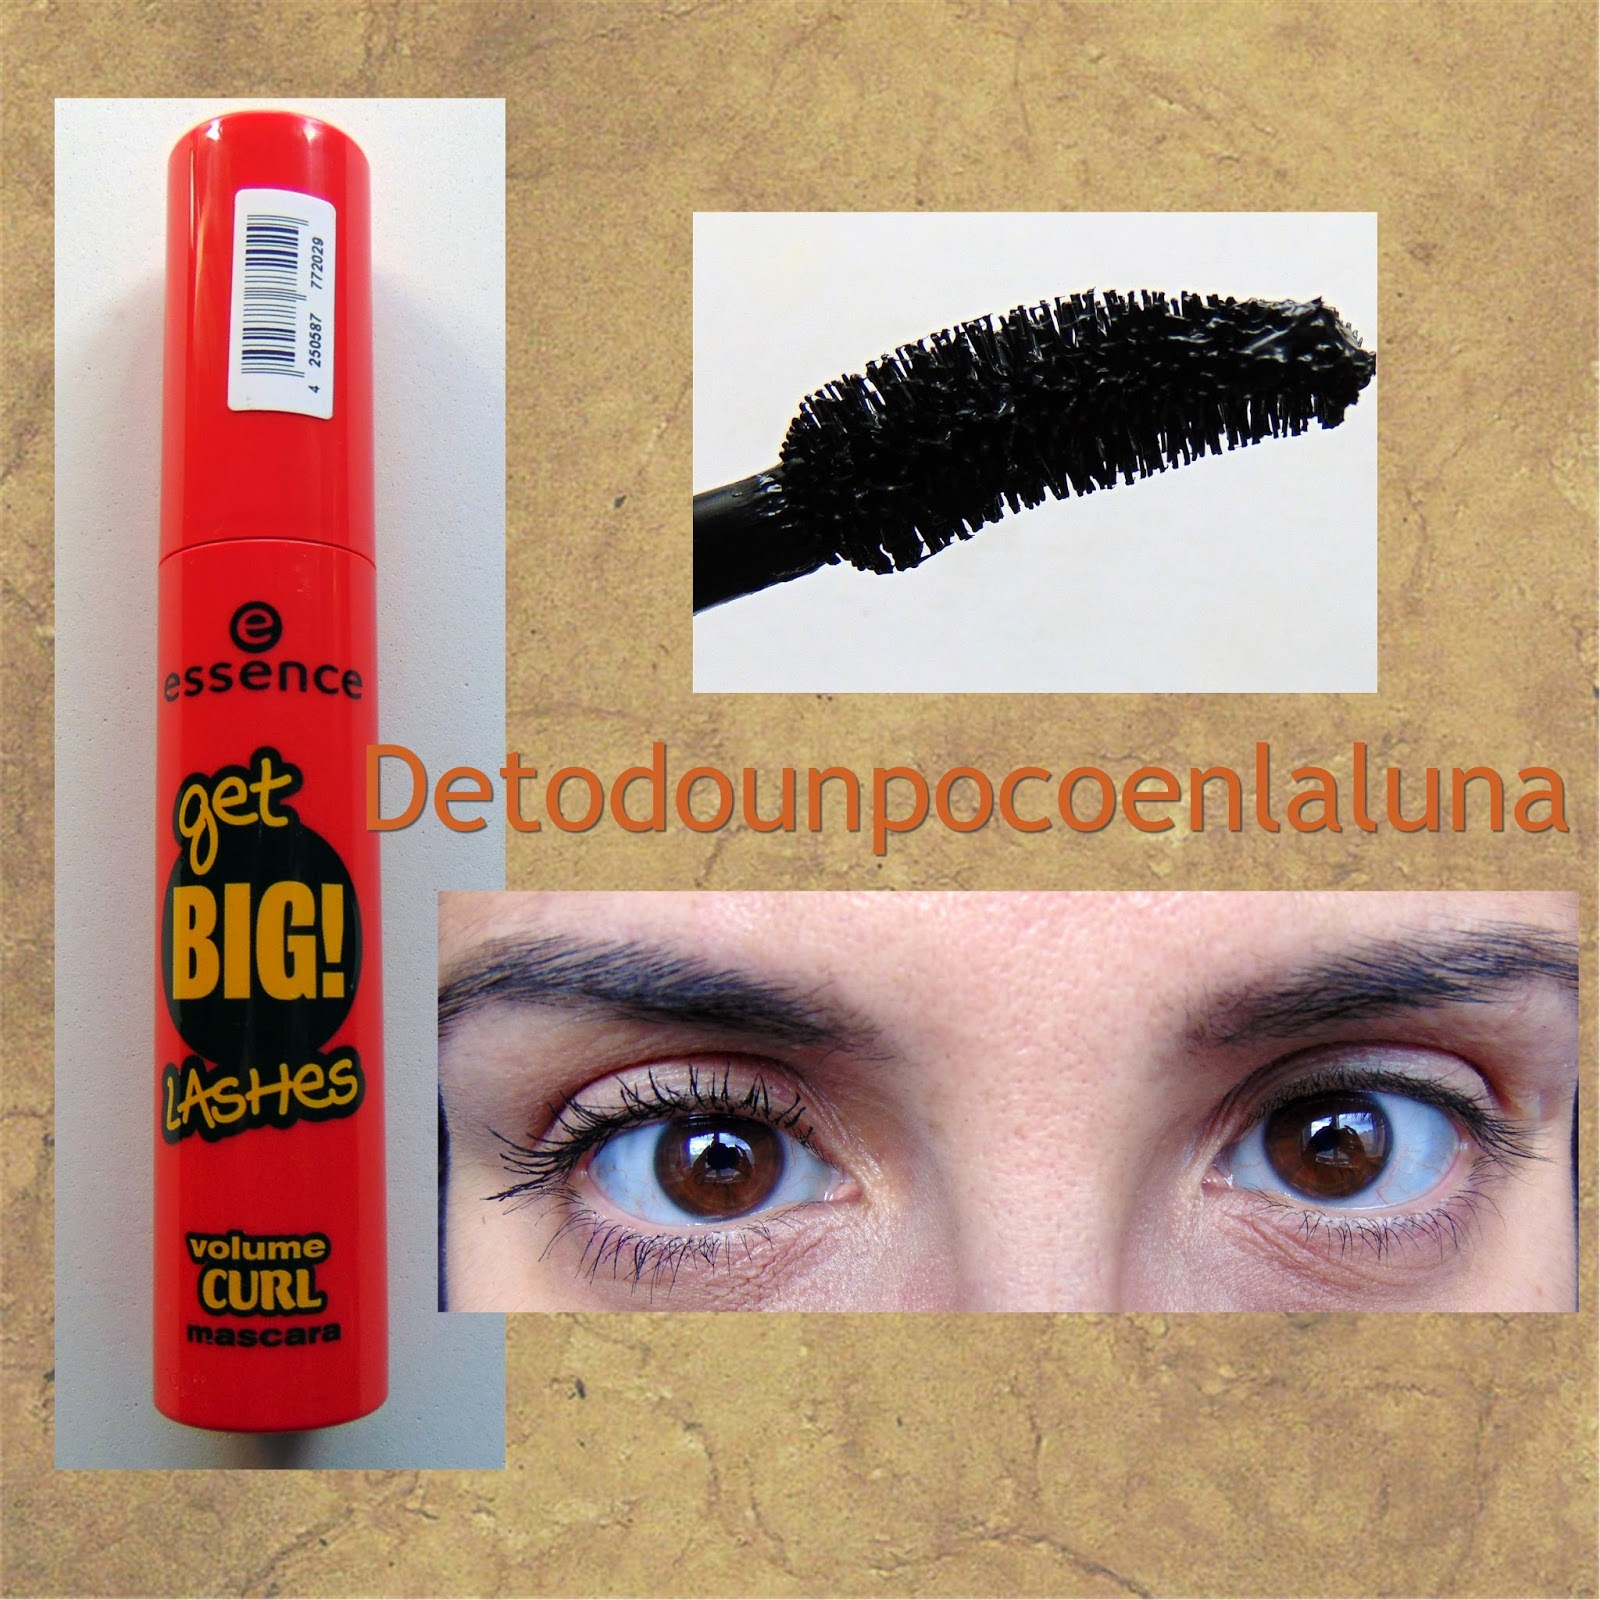 Máscara de pestañas Get Big Lashes de essence rosa